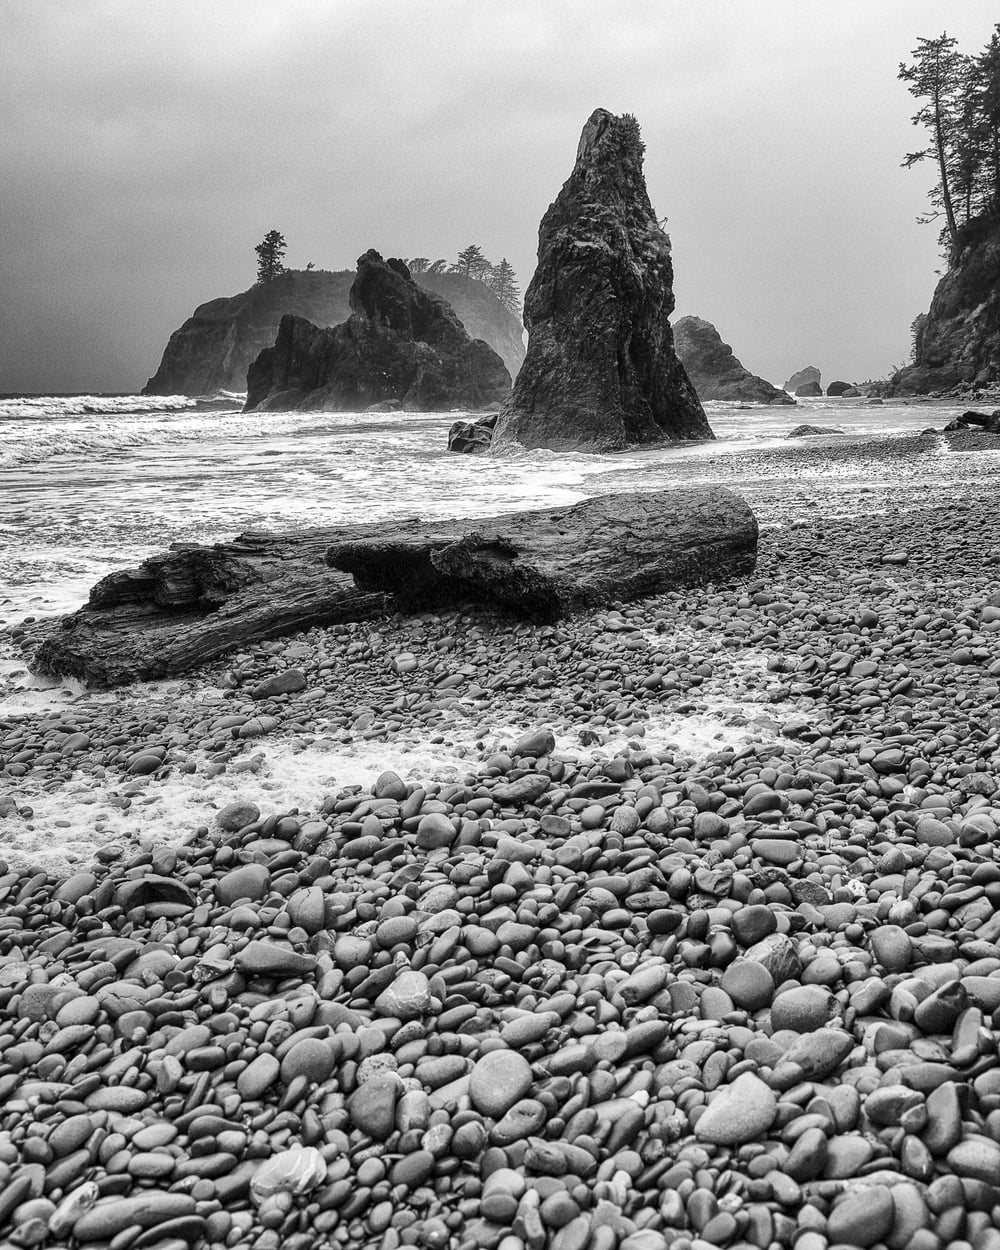 Another view of Ruby Beach.